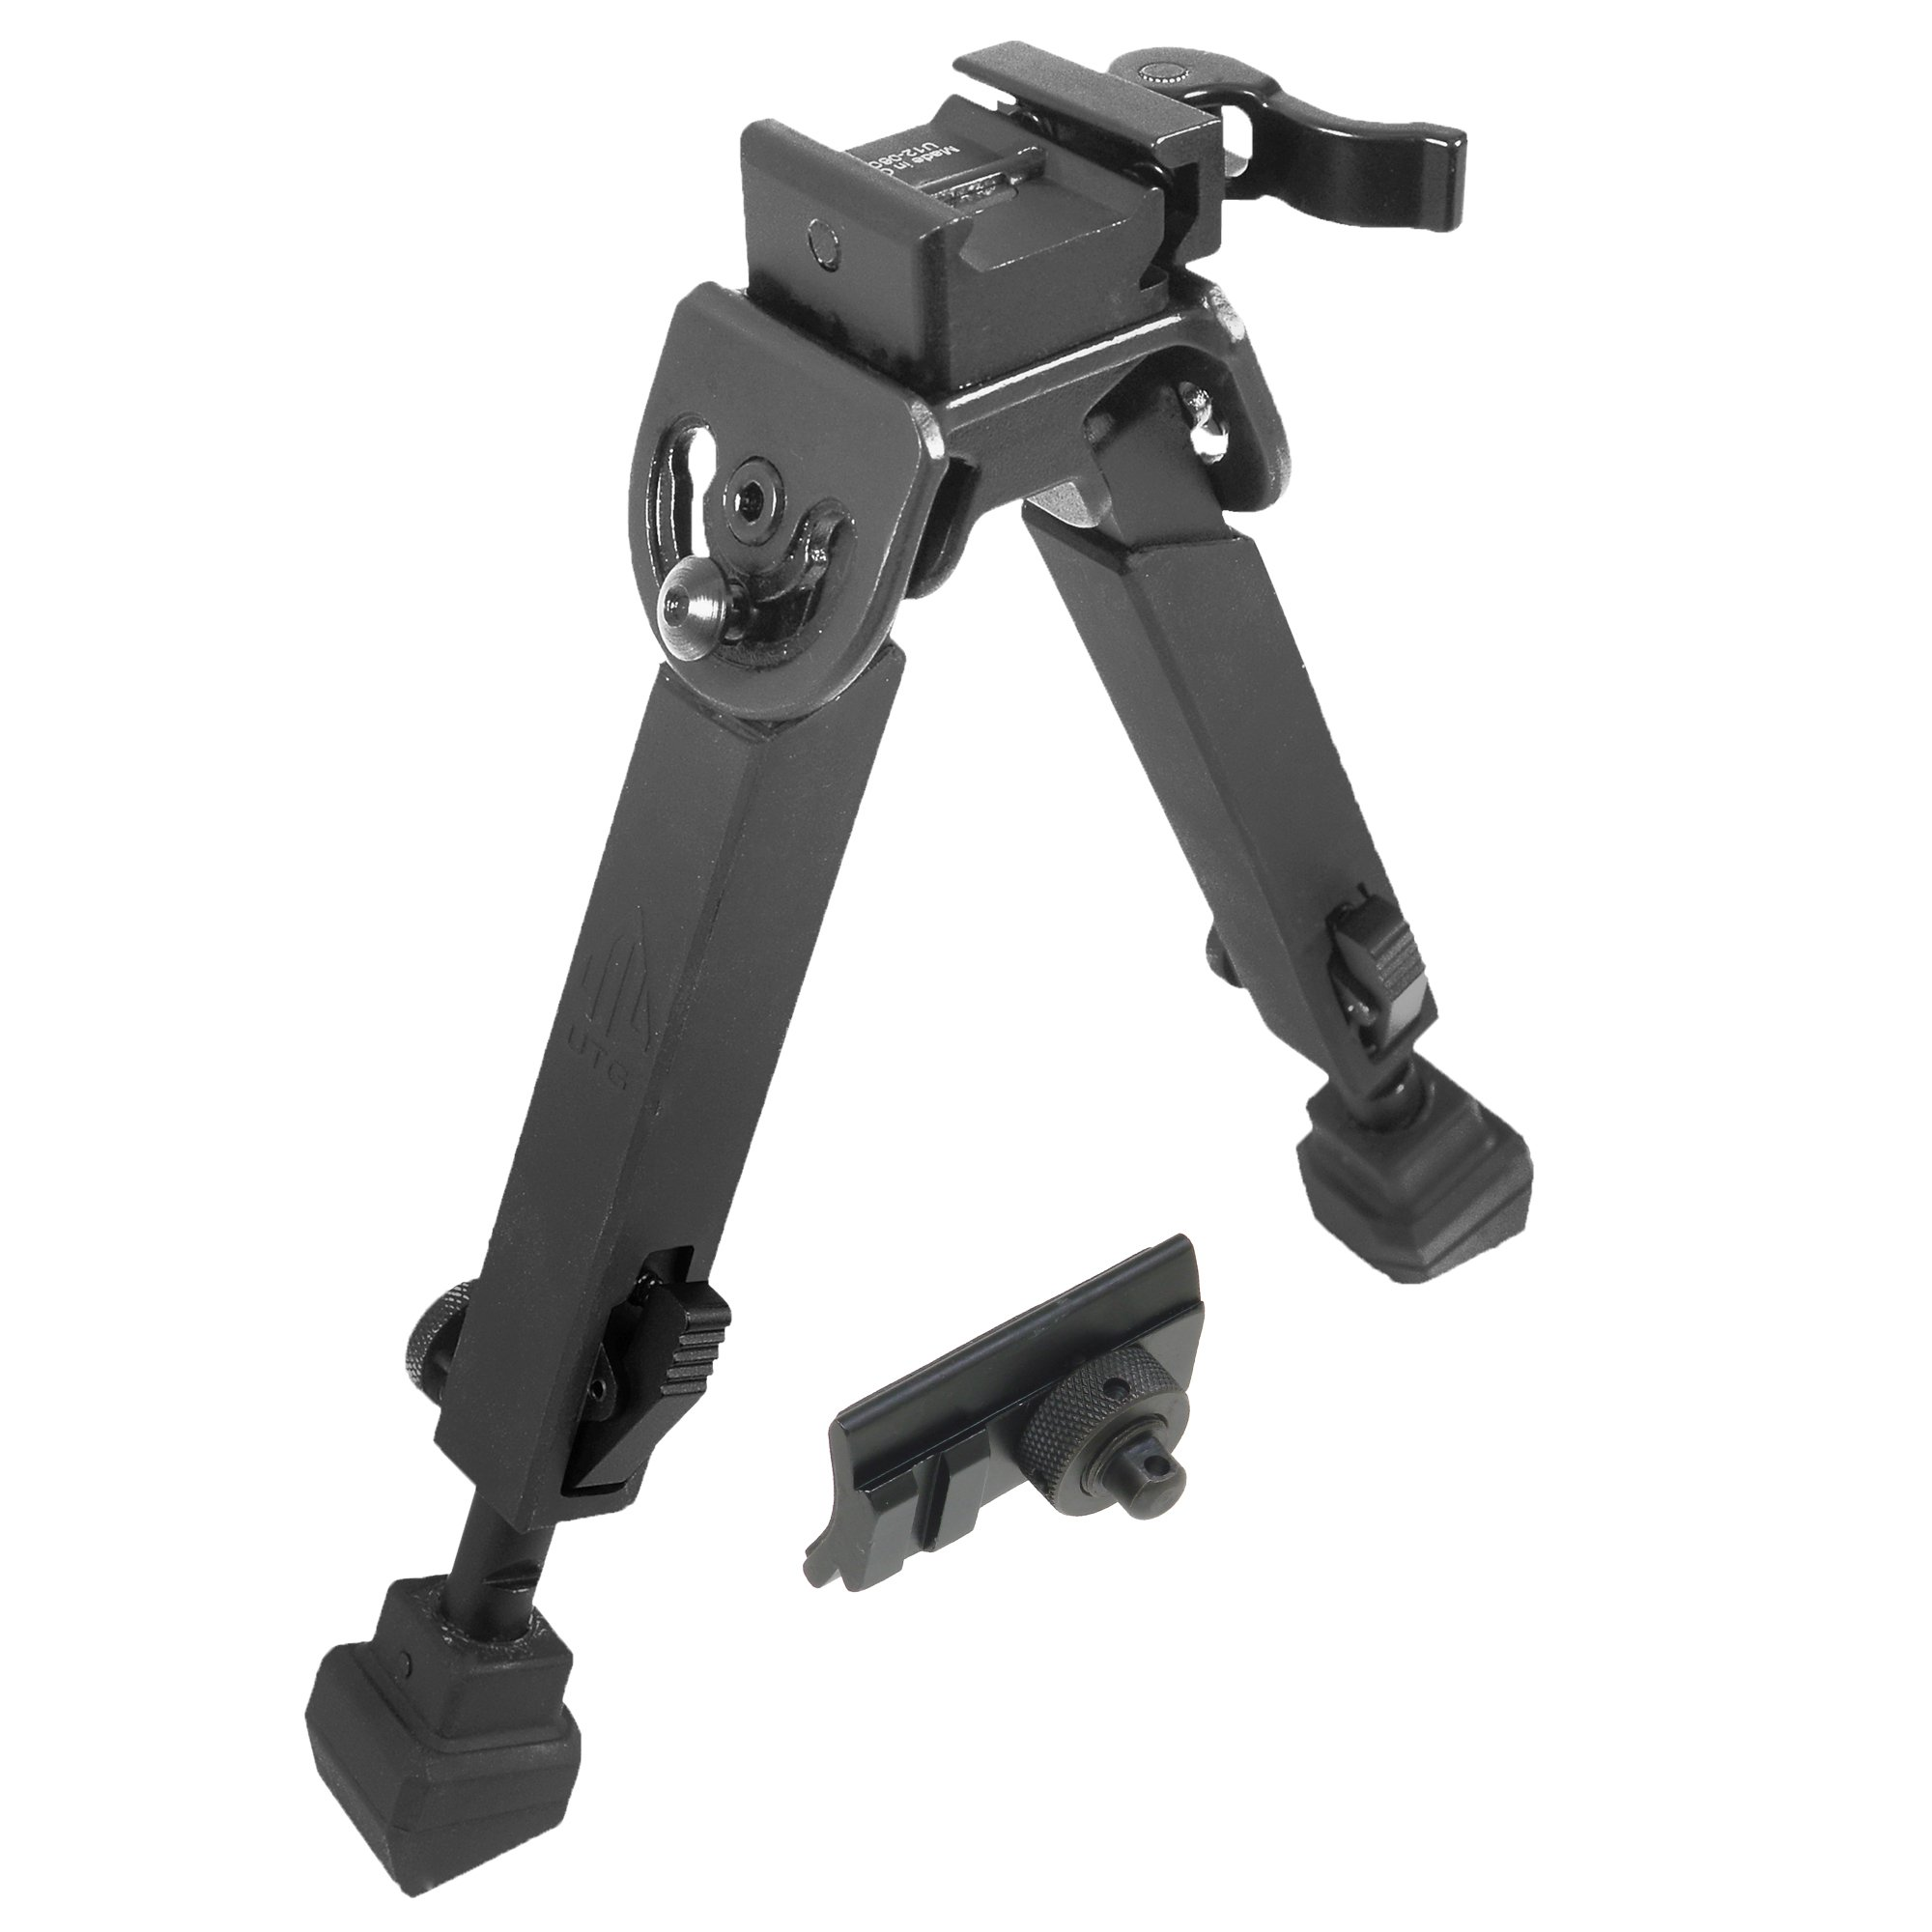 UTG Rubber Armored Full Metal QD Bipod, Height 6.0''- 8.5'' by UTG